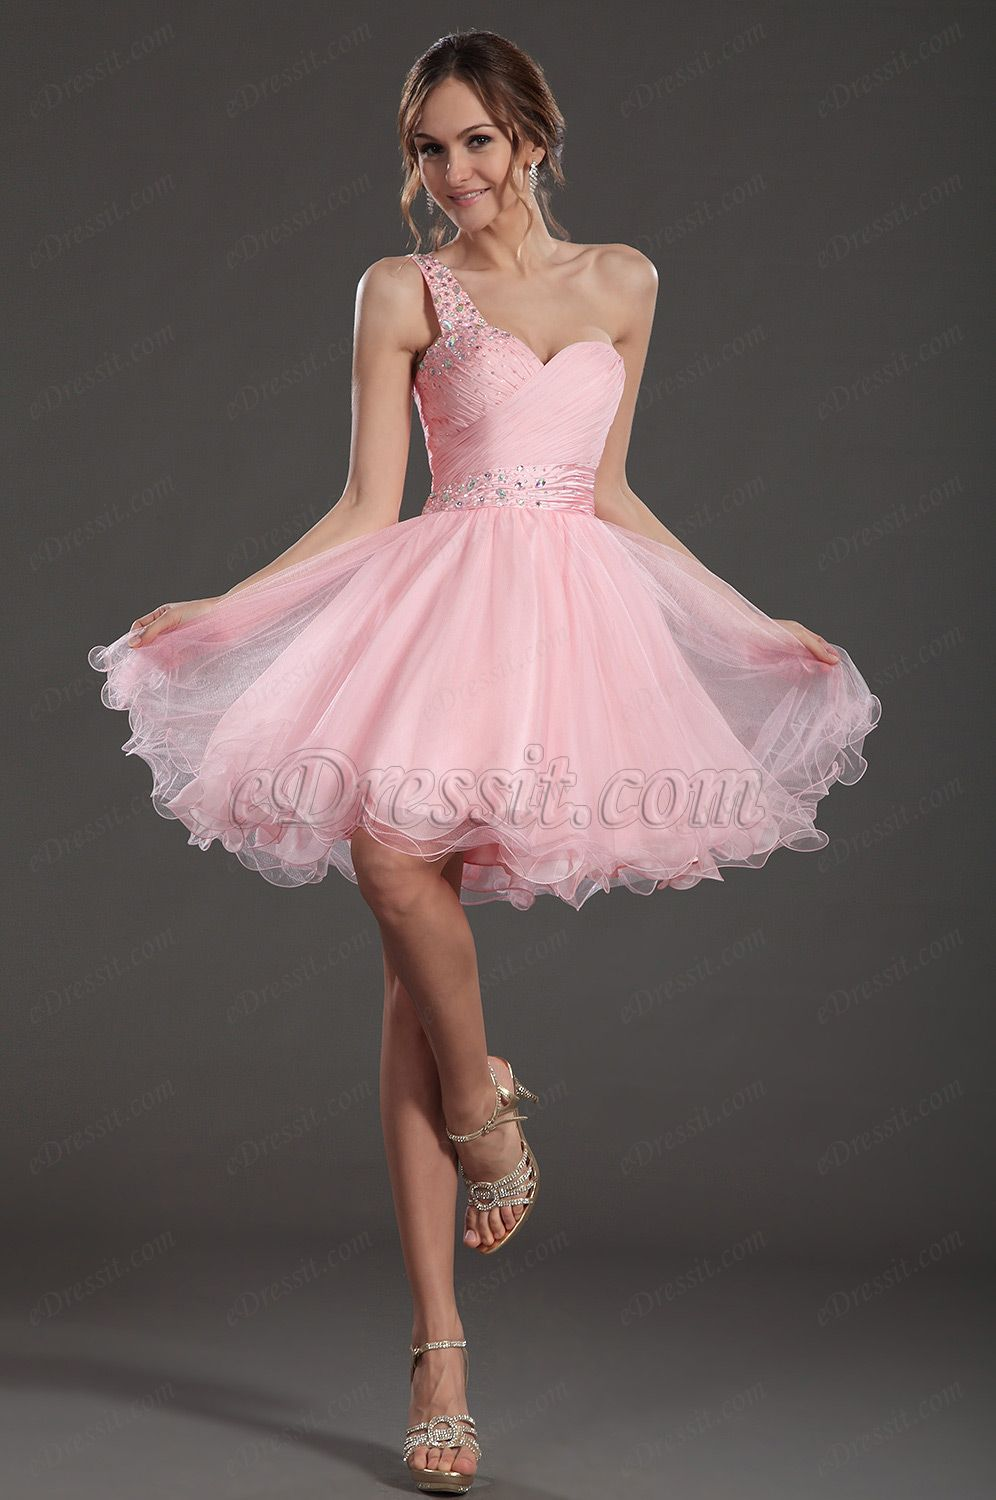 Pretty pink one strap cocktail dress party gown fashion and